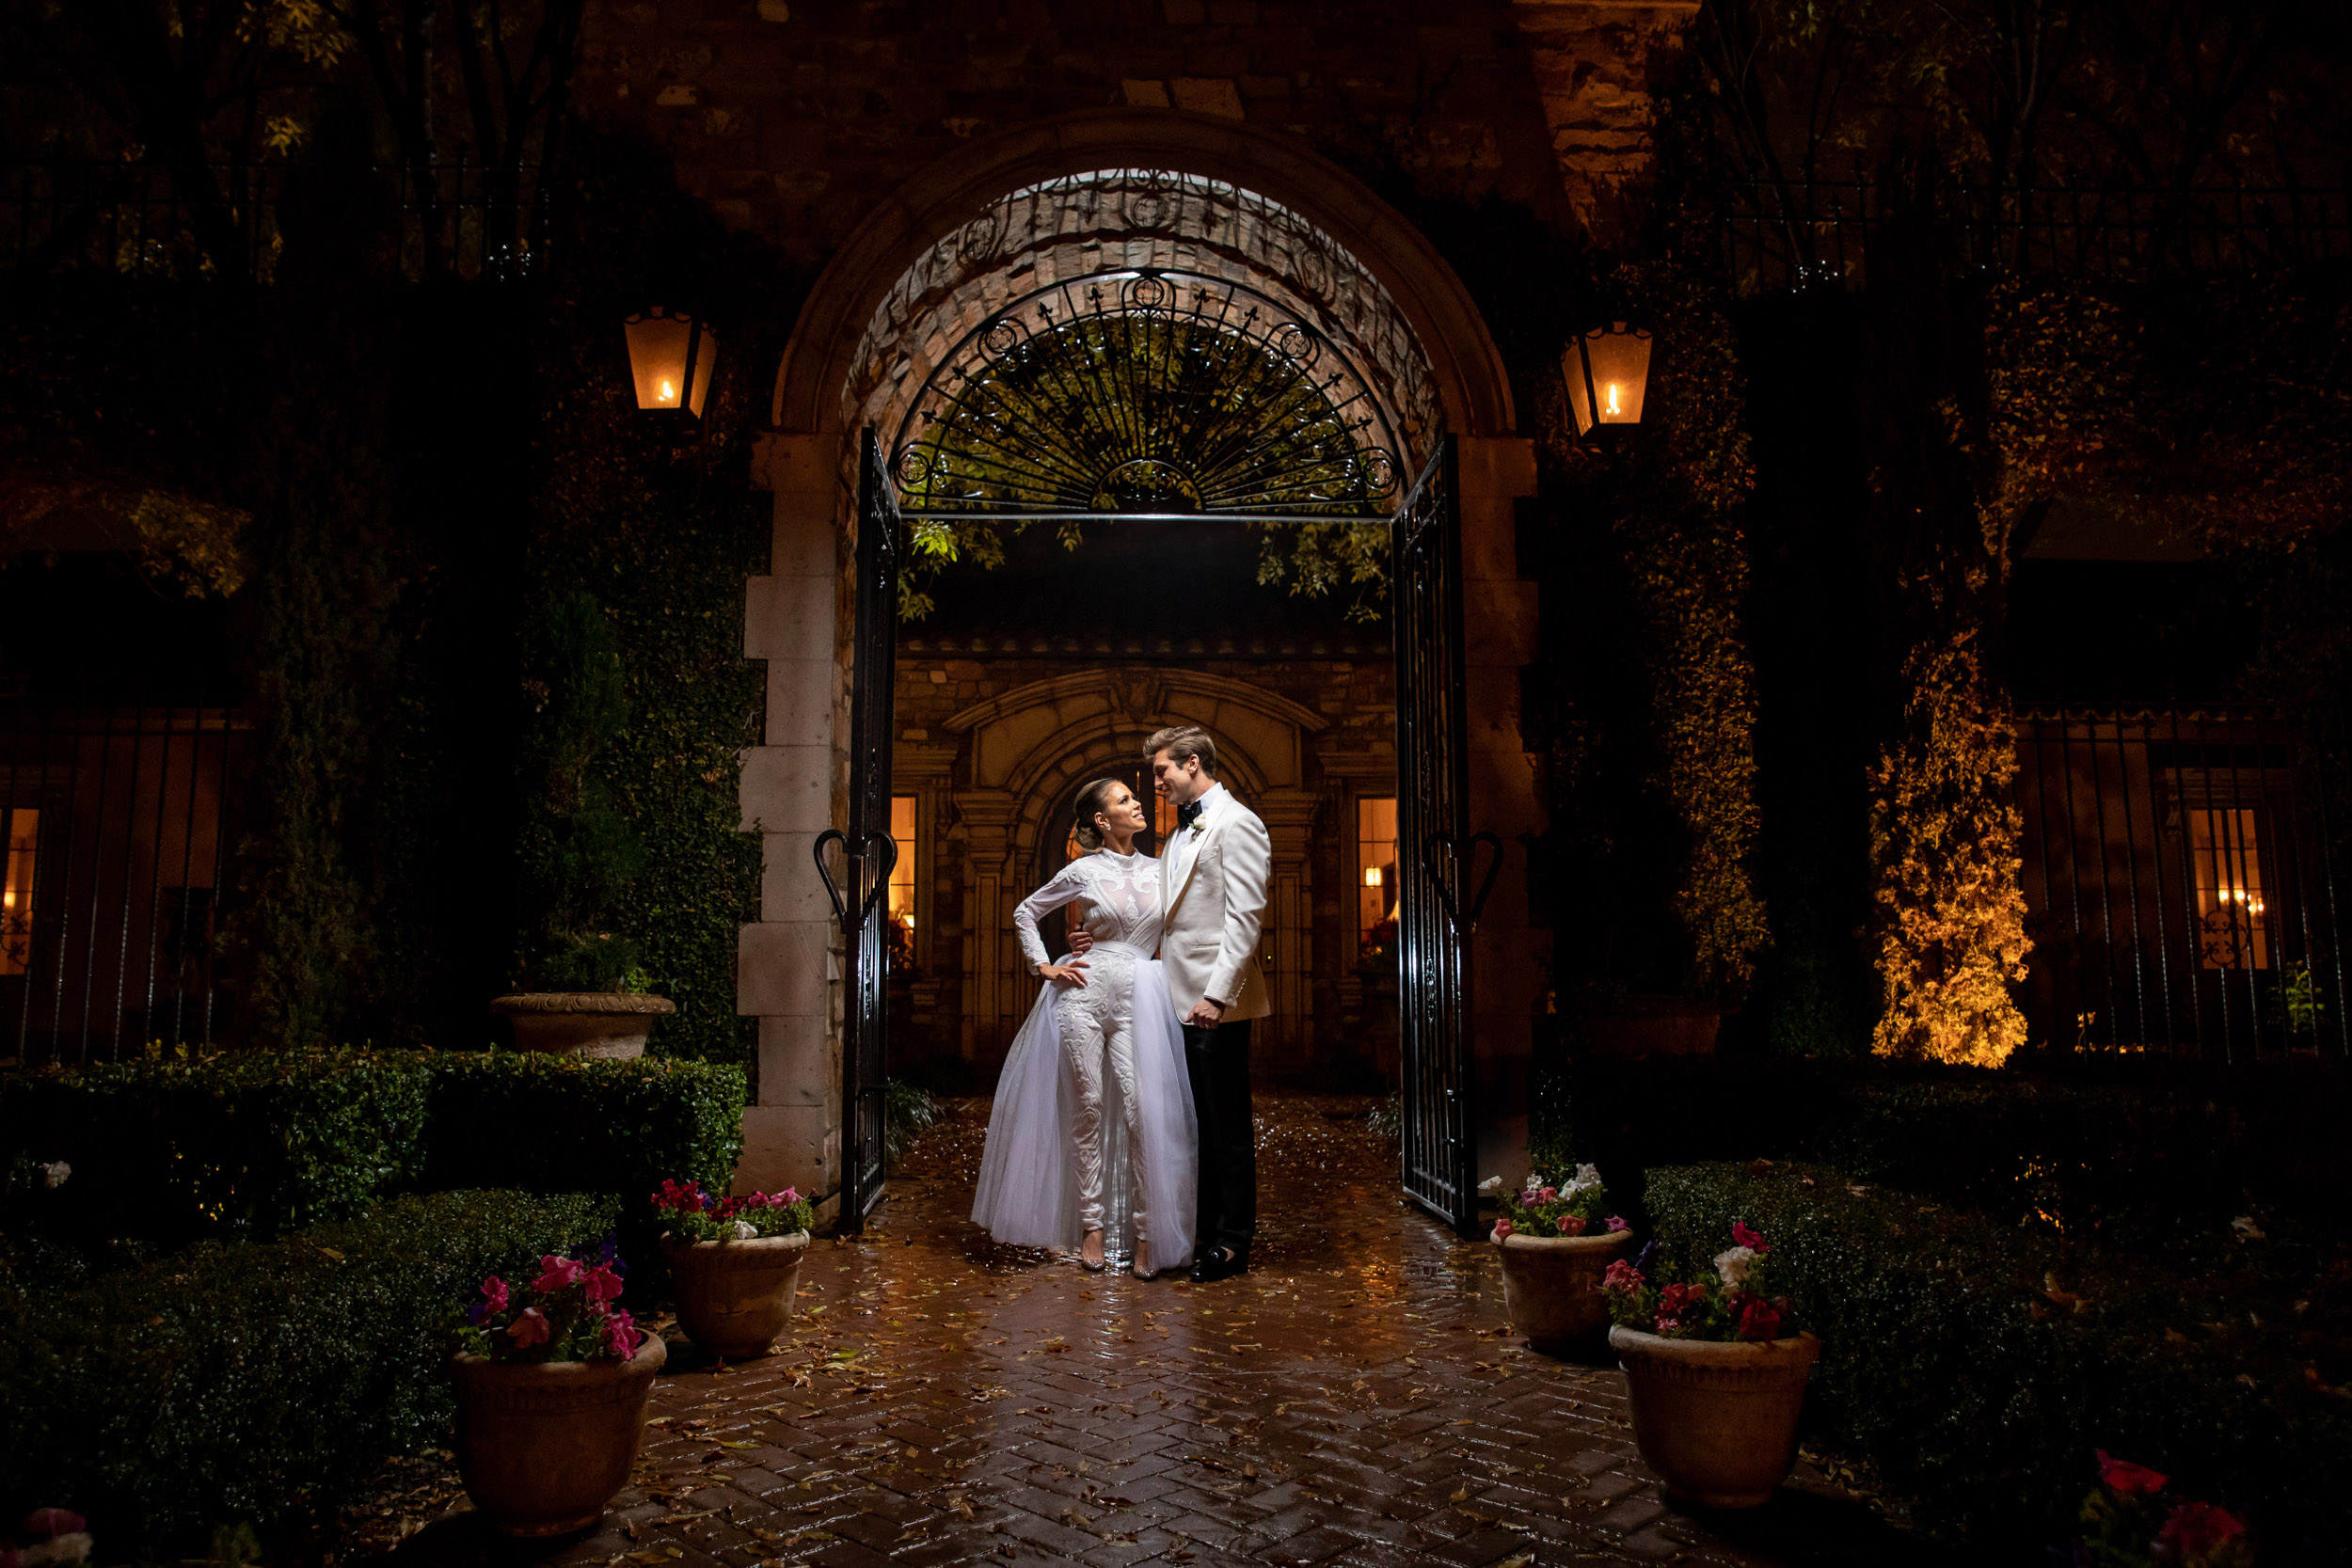 Villa siena phoenix wedding photography